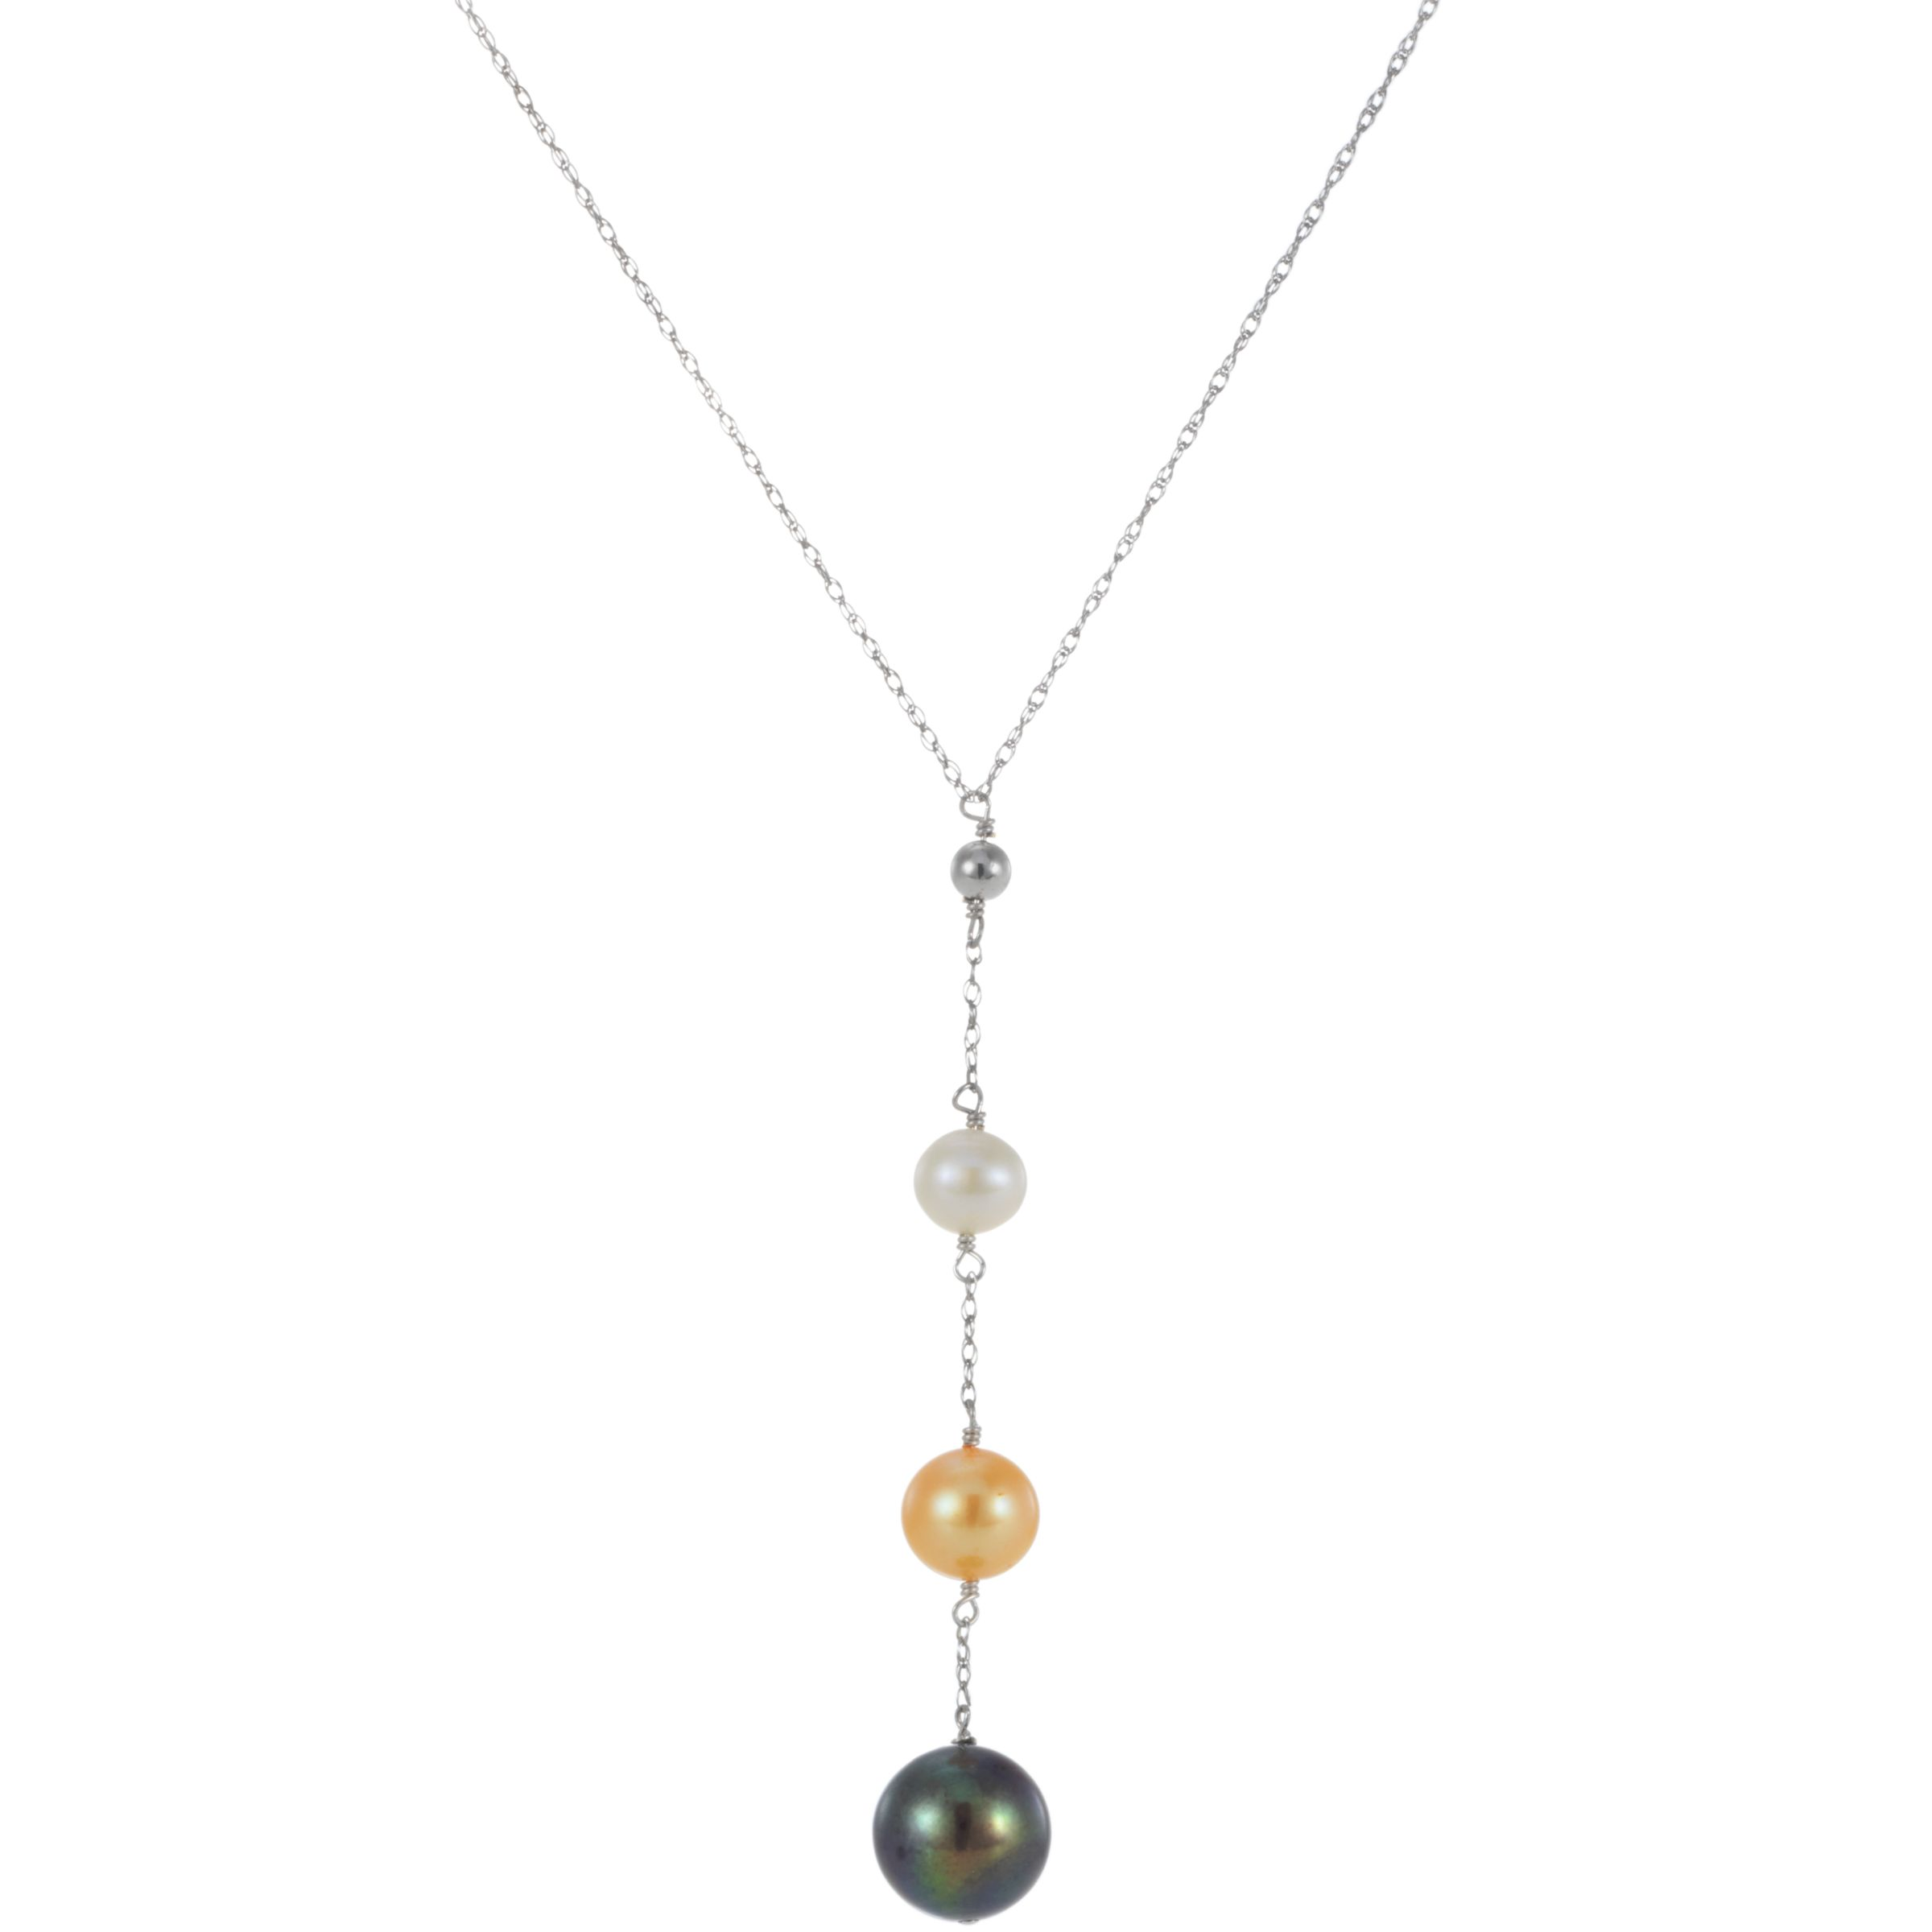 9ct White Gold and Multi Coloured Freshwater Pearl Drop Pendant Necklace